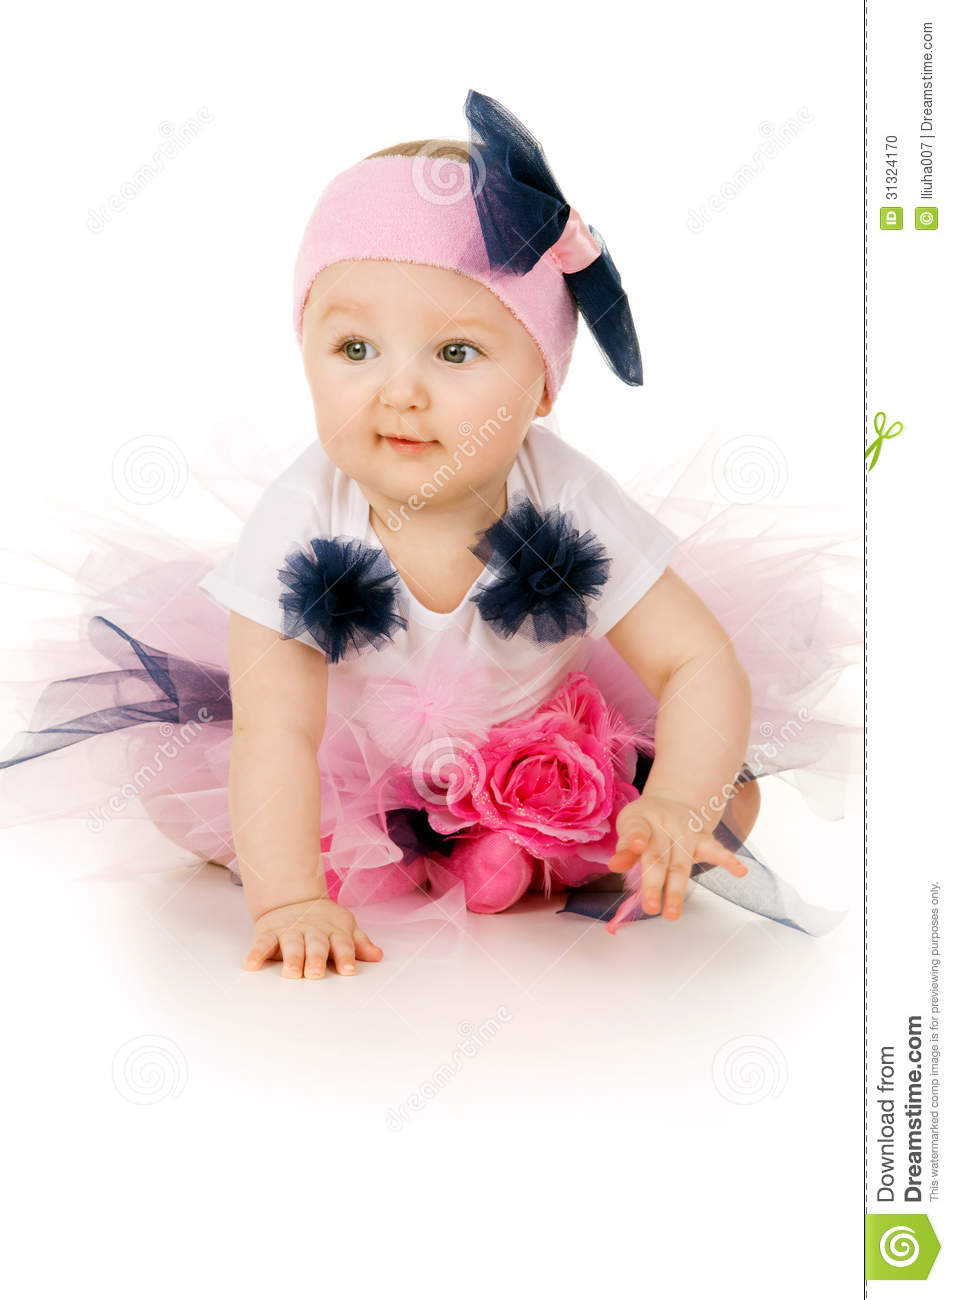 Jul 19, · The most beautiful dresses I young girl and flower girl and dresses for girls and little girl dresses and children dresses and, dresses for girls and dresses for kids pageant dresses .